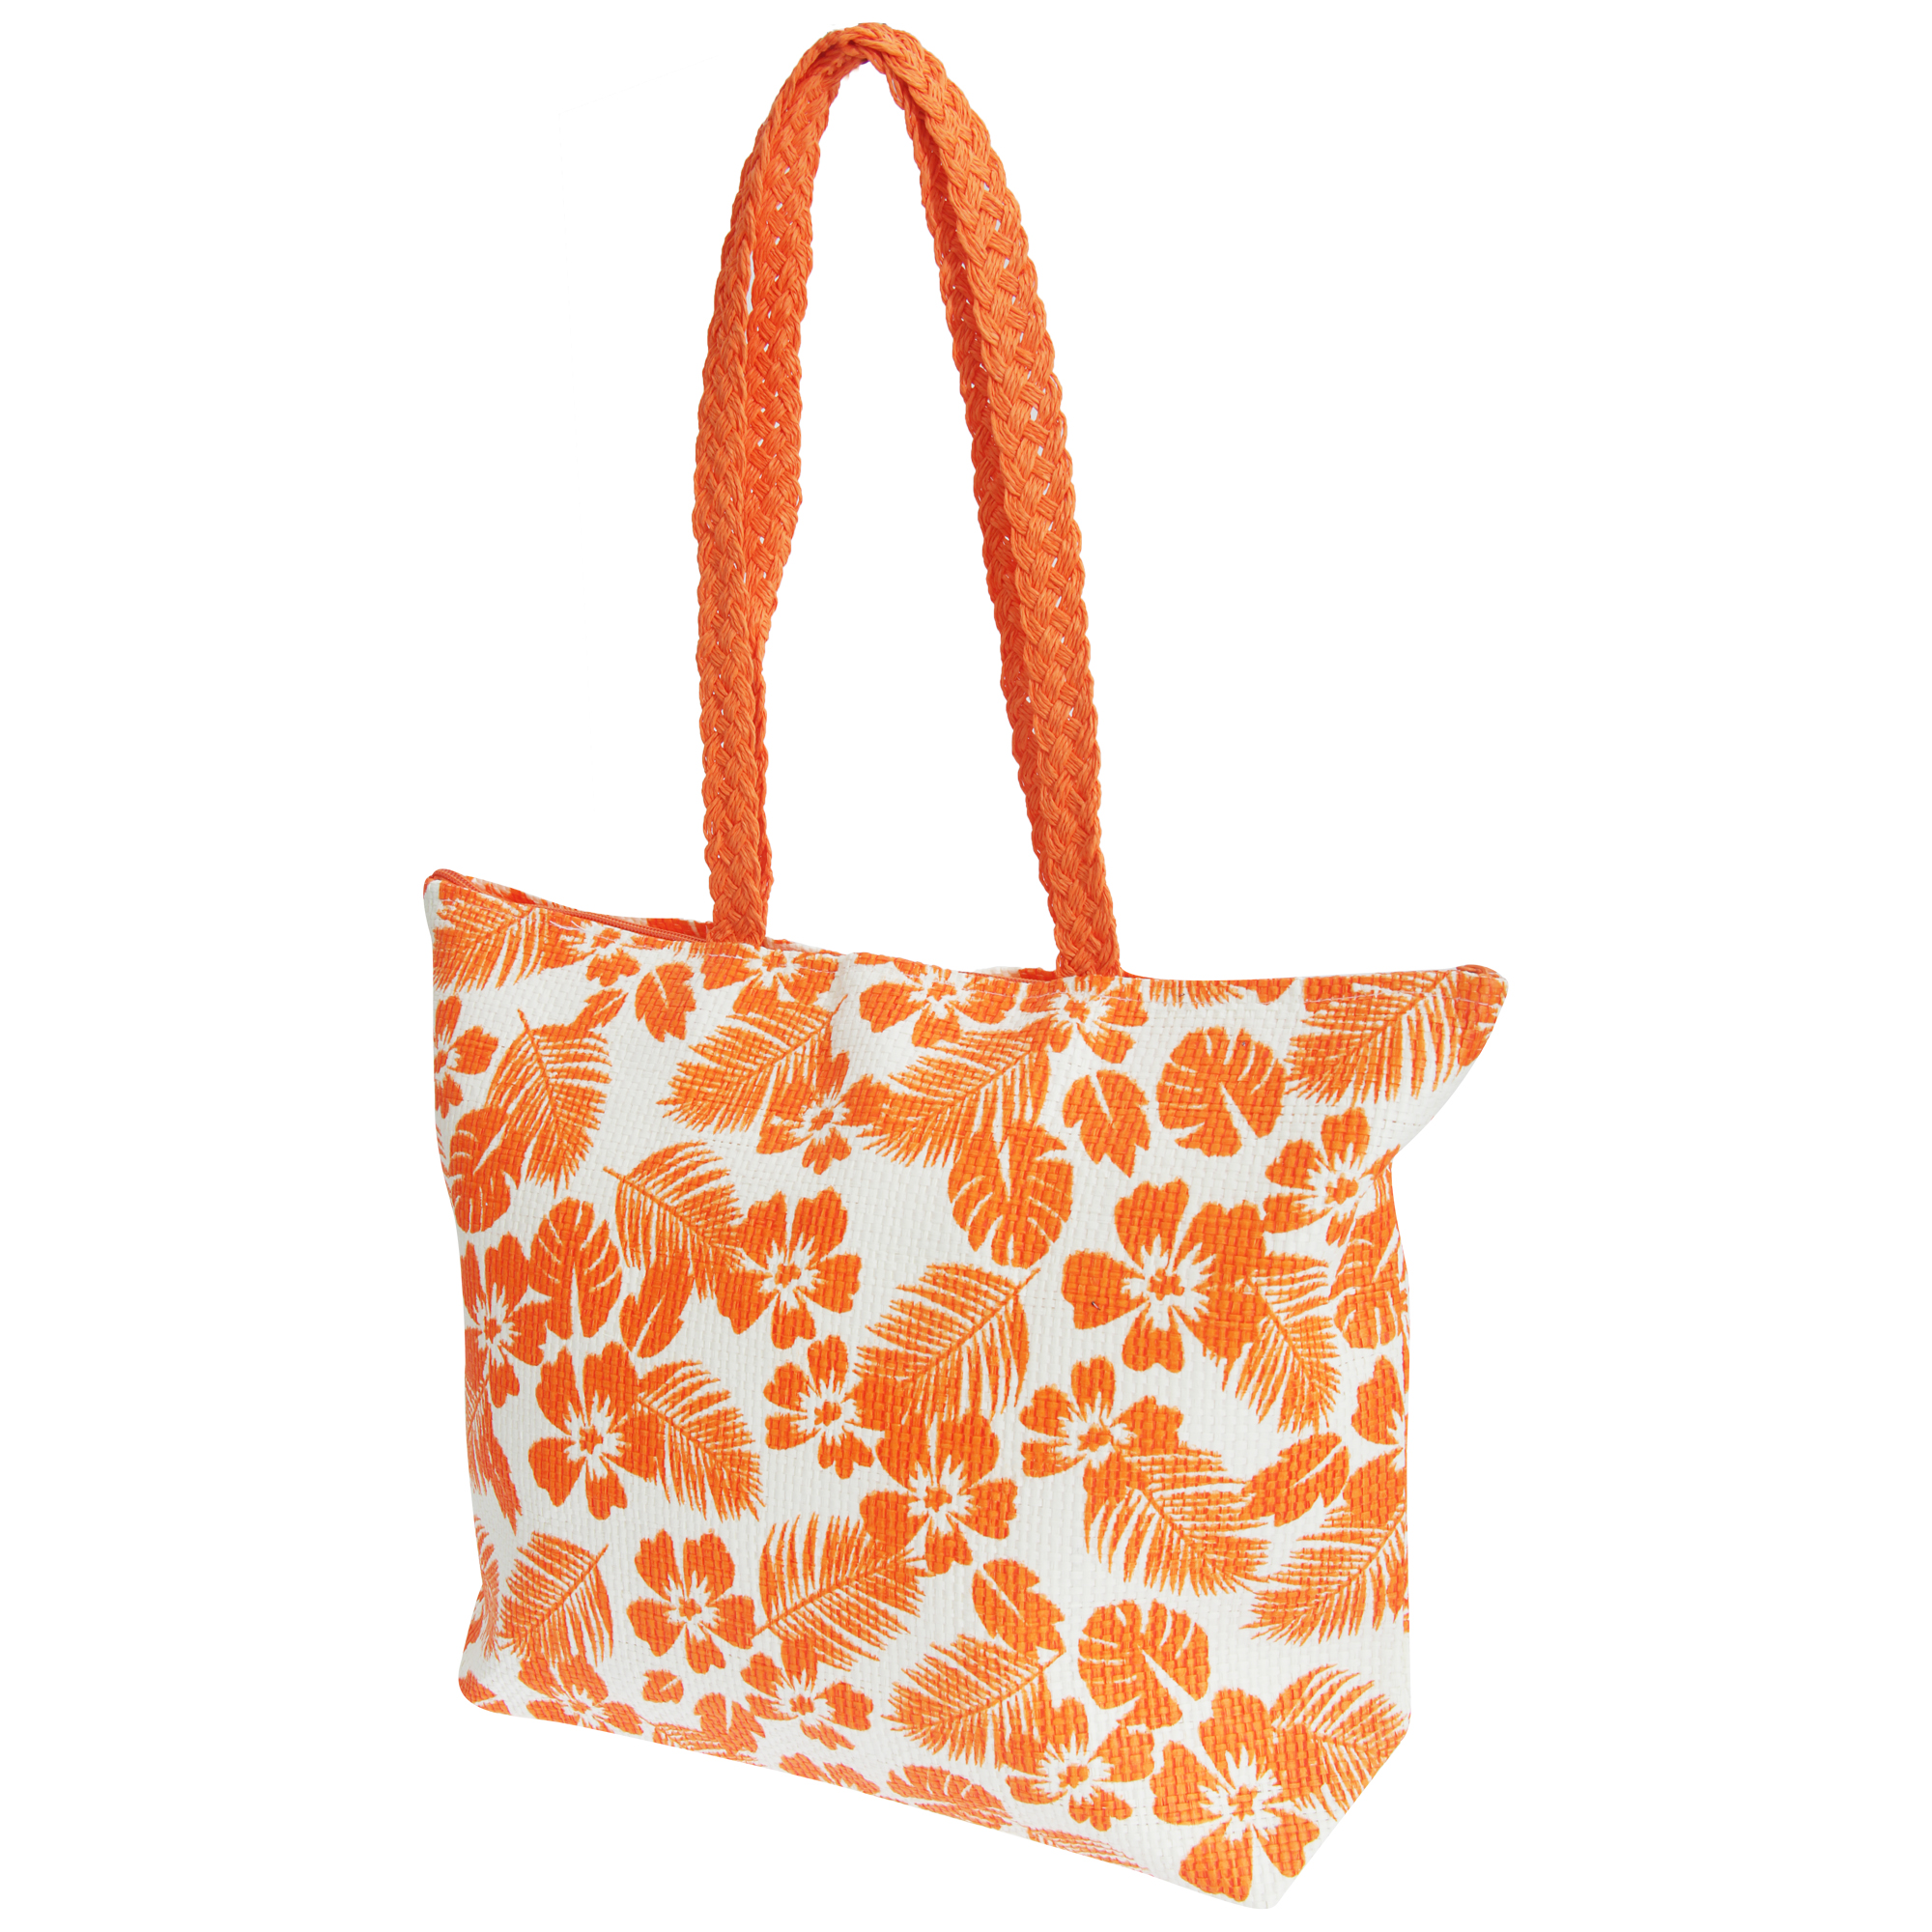 FLOSO Womens/Ladies Floral Leaf Pattern Straw Woven Summer Handbag (One Size) (White/Coral)